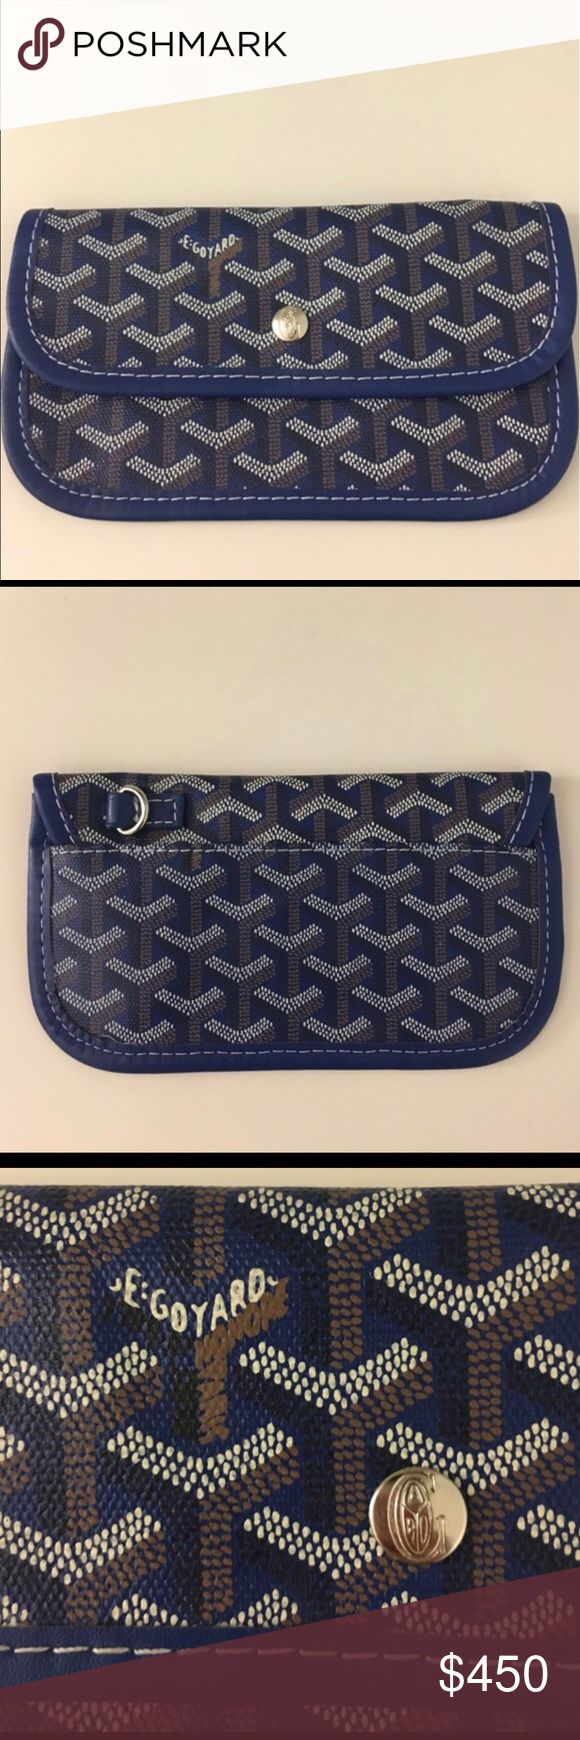 Goyard mini wallet This is part of the Goyard Tote bag. Never been used. Since I'm in a great mood I will sell it with a Goyard. Serial number on the 4th picture Goyard Bags Wallets